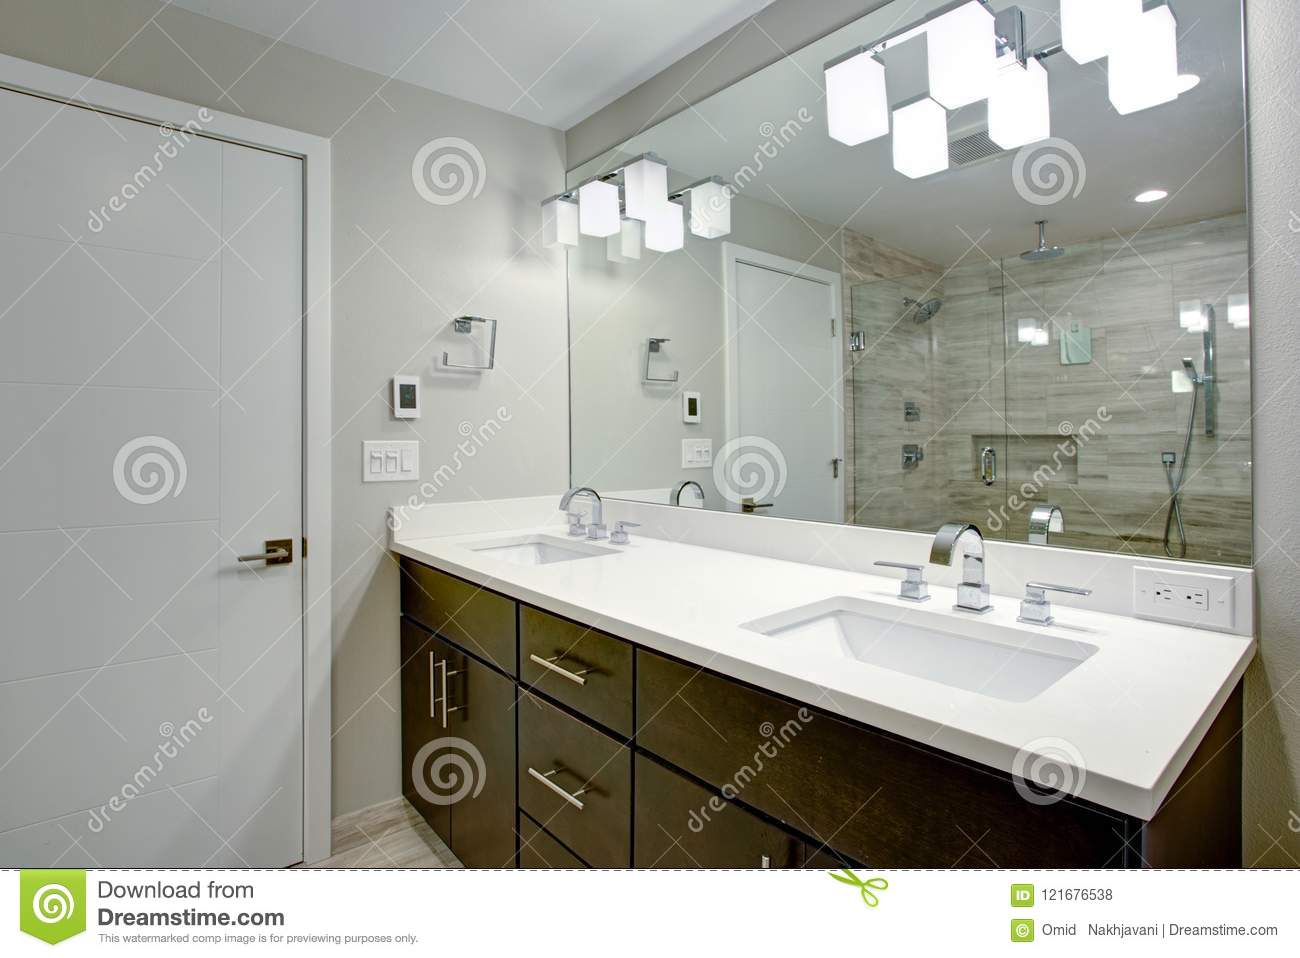 Elegant Bathroom With Espresso Double Vanity Stock Photo Image